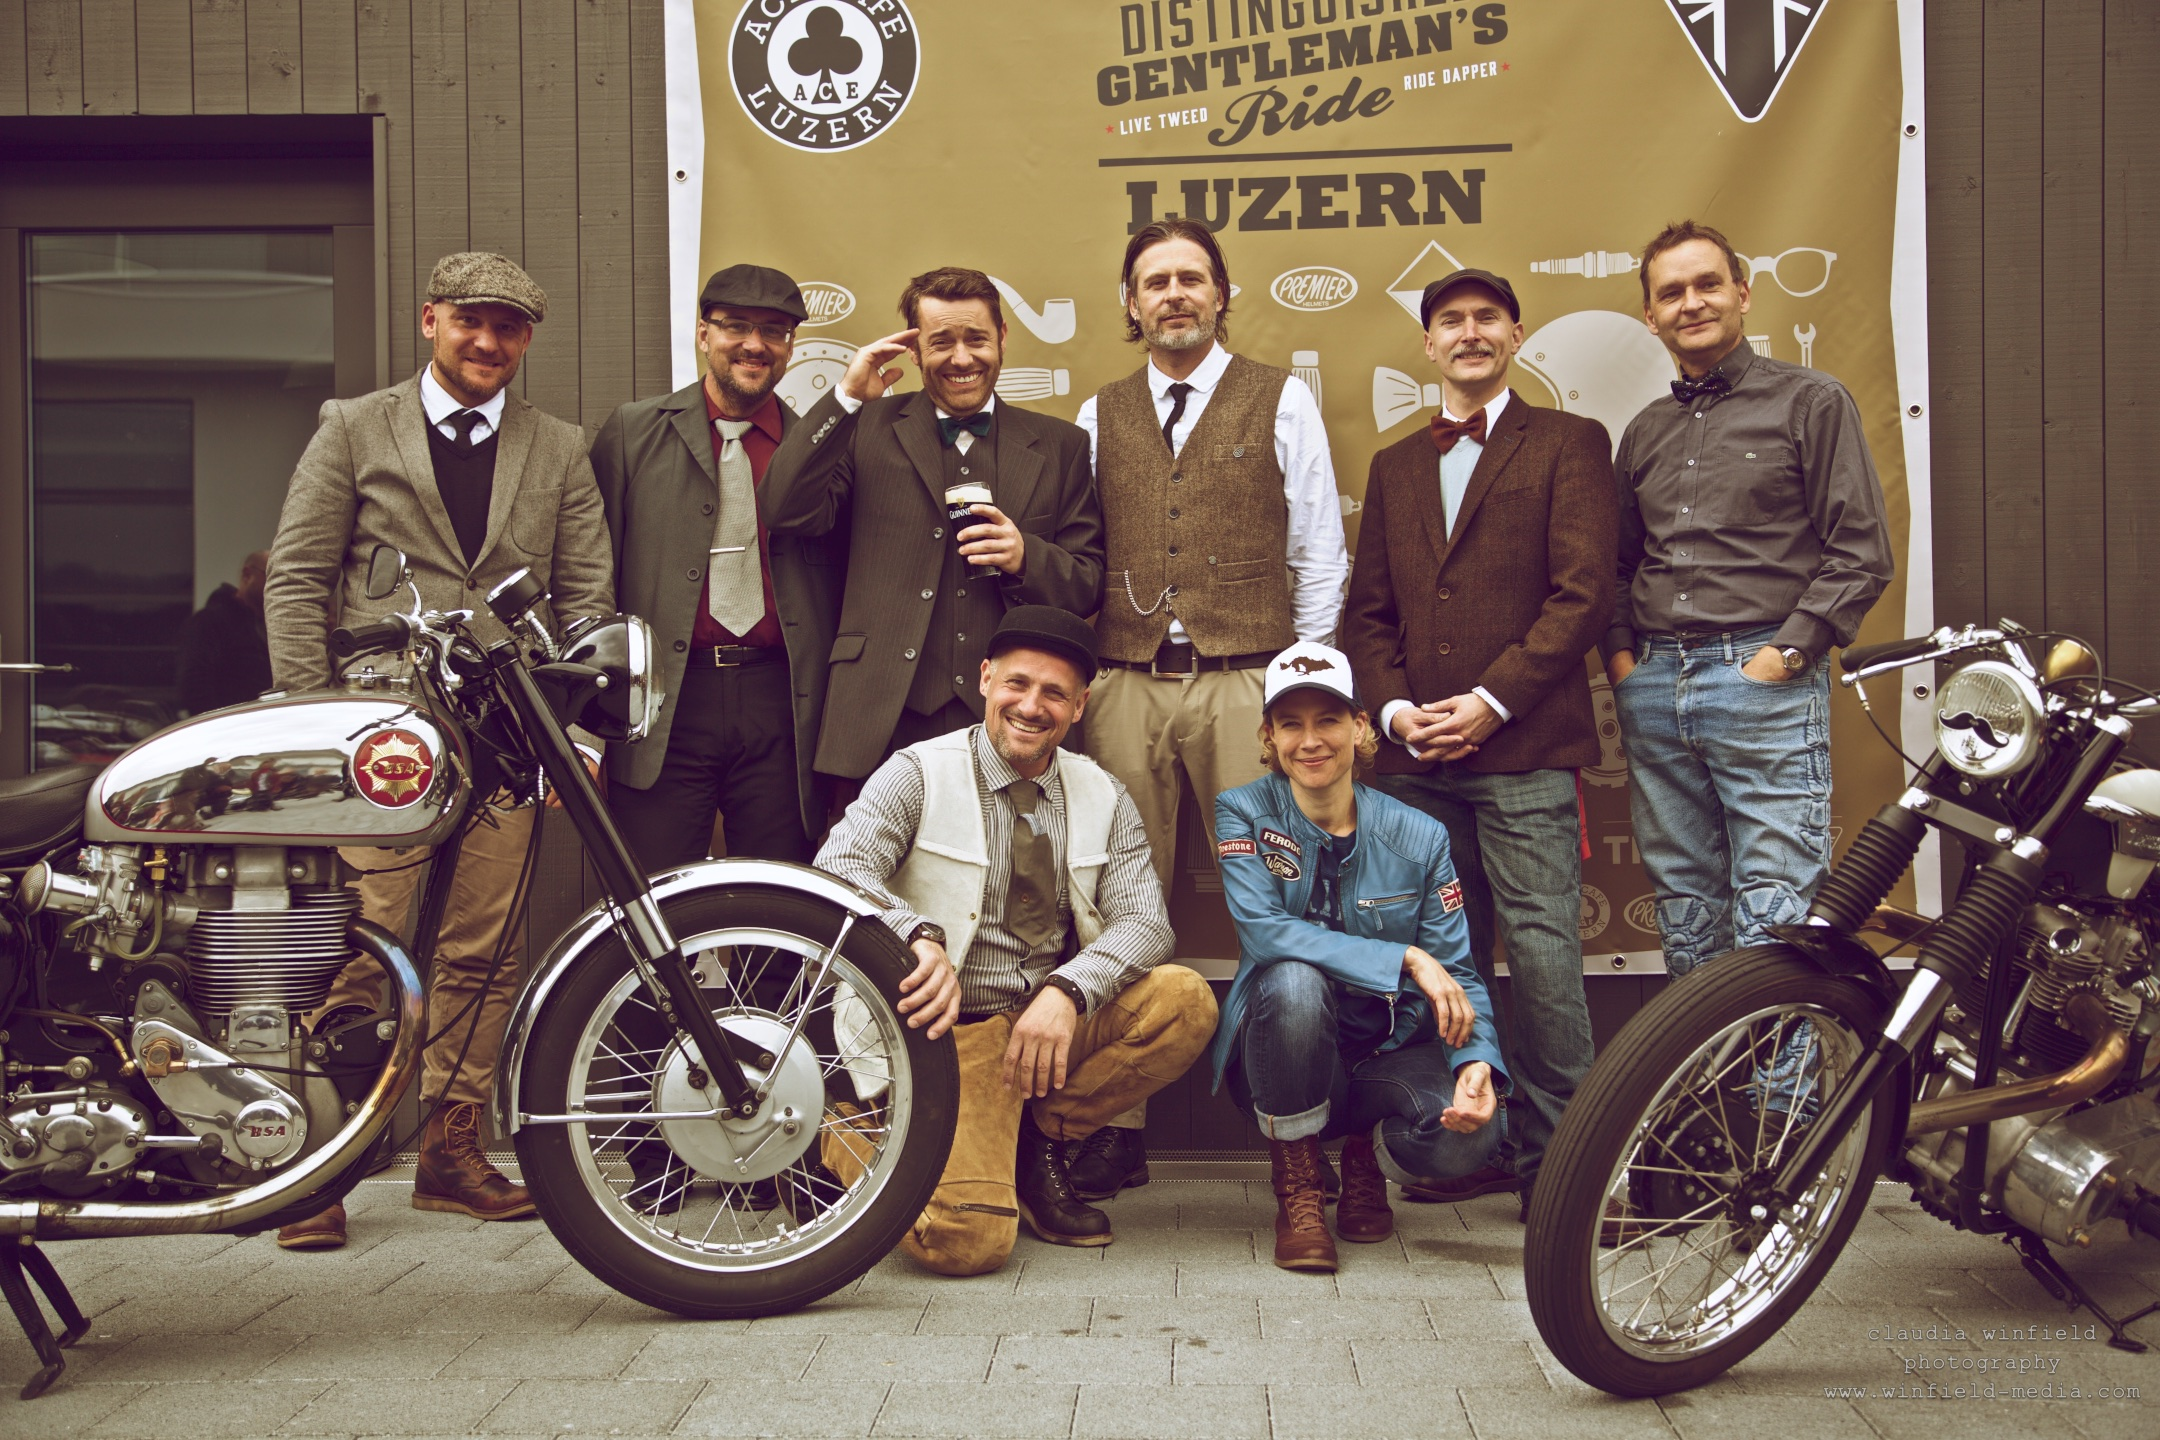 distinguished gentleman's ride 1545